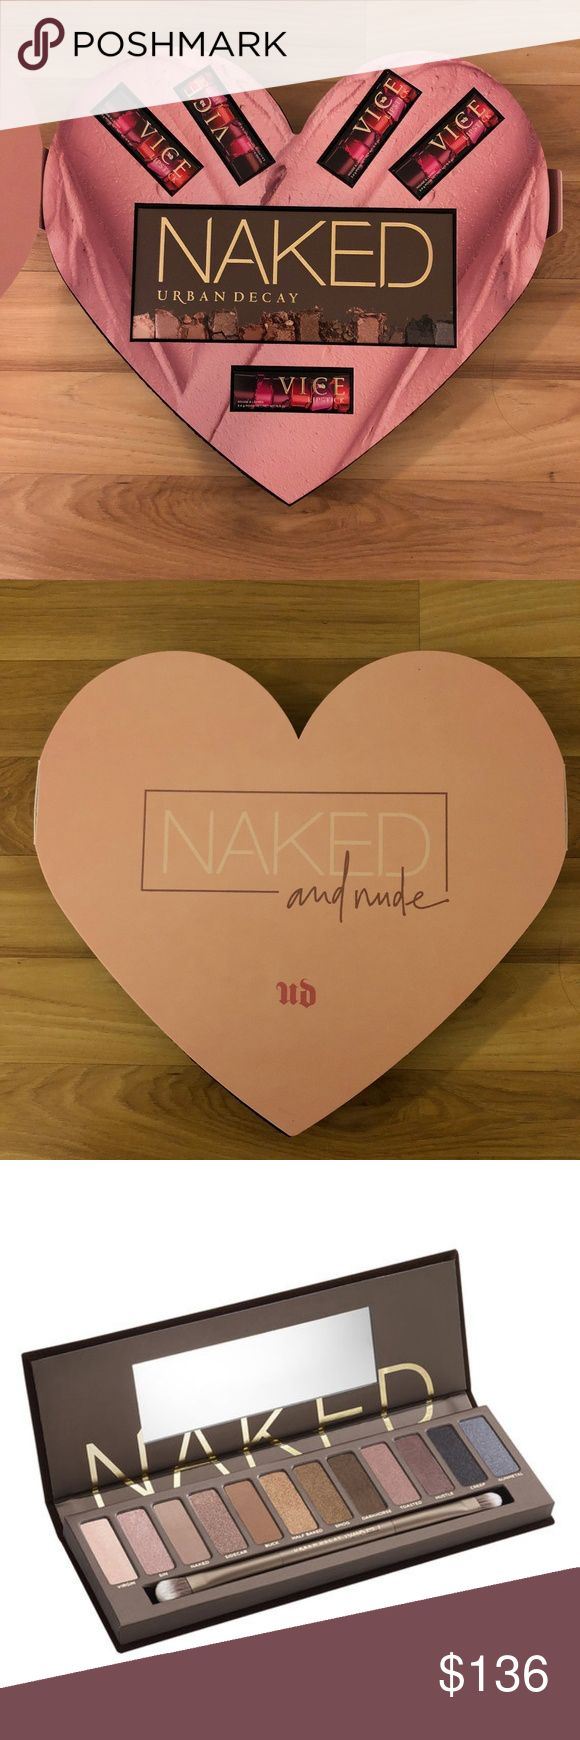 Naked and Nude 6-Piece Gift Set NOT SOLD IN STORES Brand new gift set NOT SOLD IN STORES. All items are exclusively curated for a complete, matching look.  Price is based on current full retail price on Urban Decay.  Includes:   1) Naked Palette - $54  2) Vice Metallized Lipstick in Gubby - $18  3) Vice Comfort Matte Lipstick in 1993 - $18  4) Vice Comfort Matte Lipstick in Backtalk - $18  5) Vice Comfort Matte Lipstick in Stark Naked - $18  6) Vice Cream Lipstick in Naked - $18  Total…